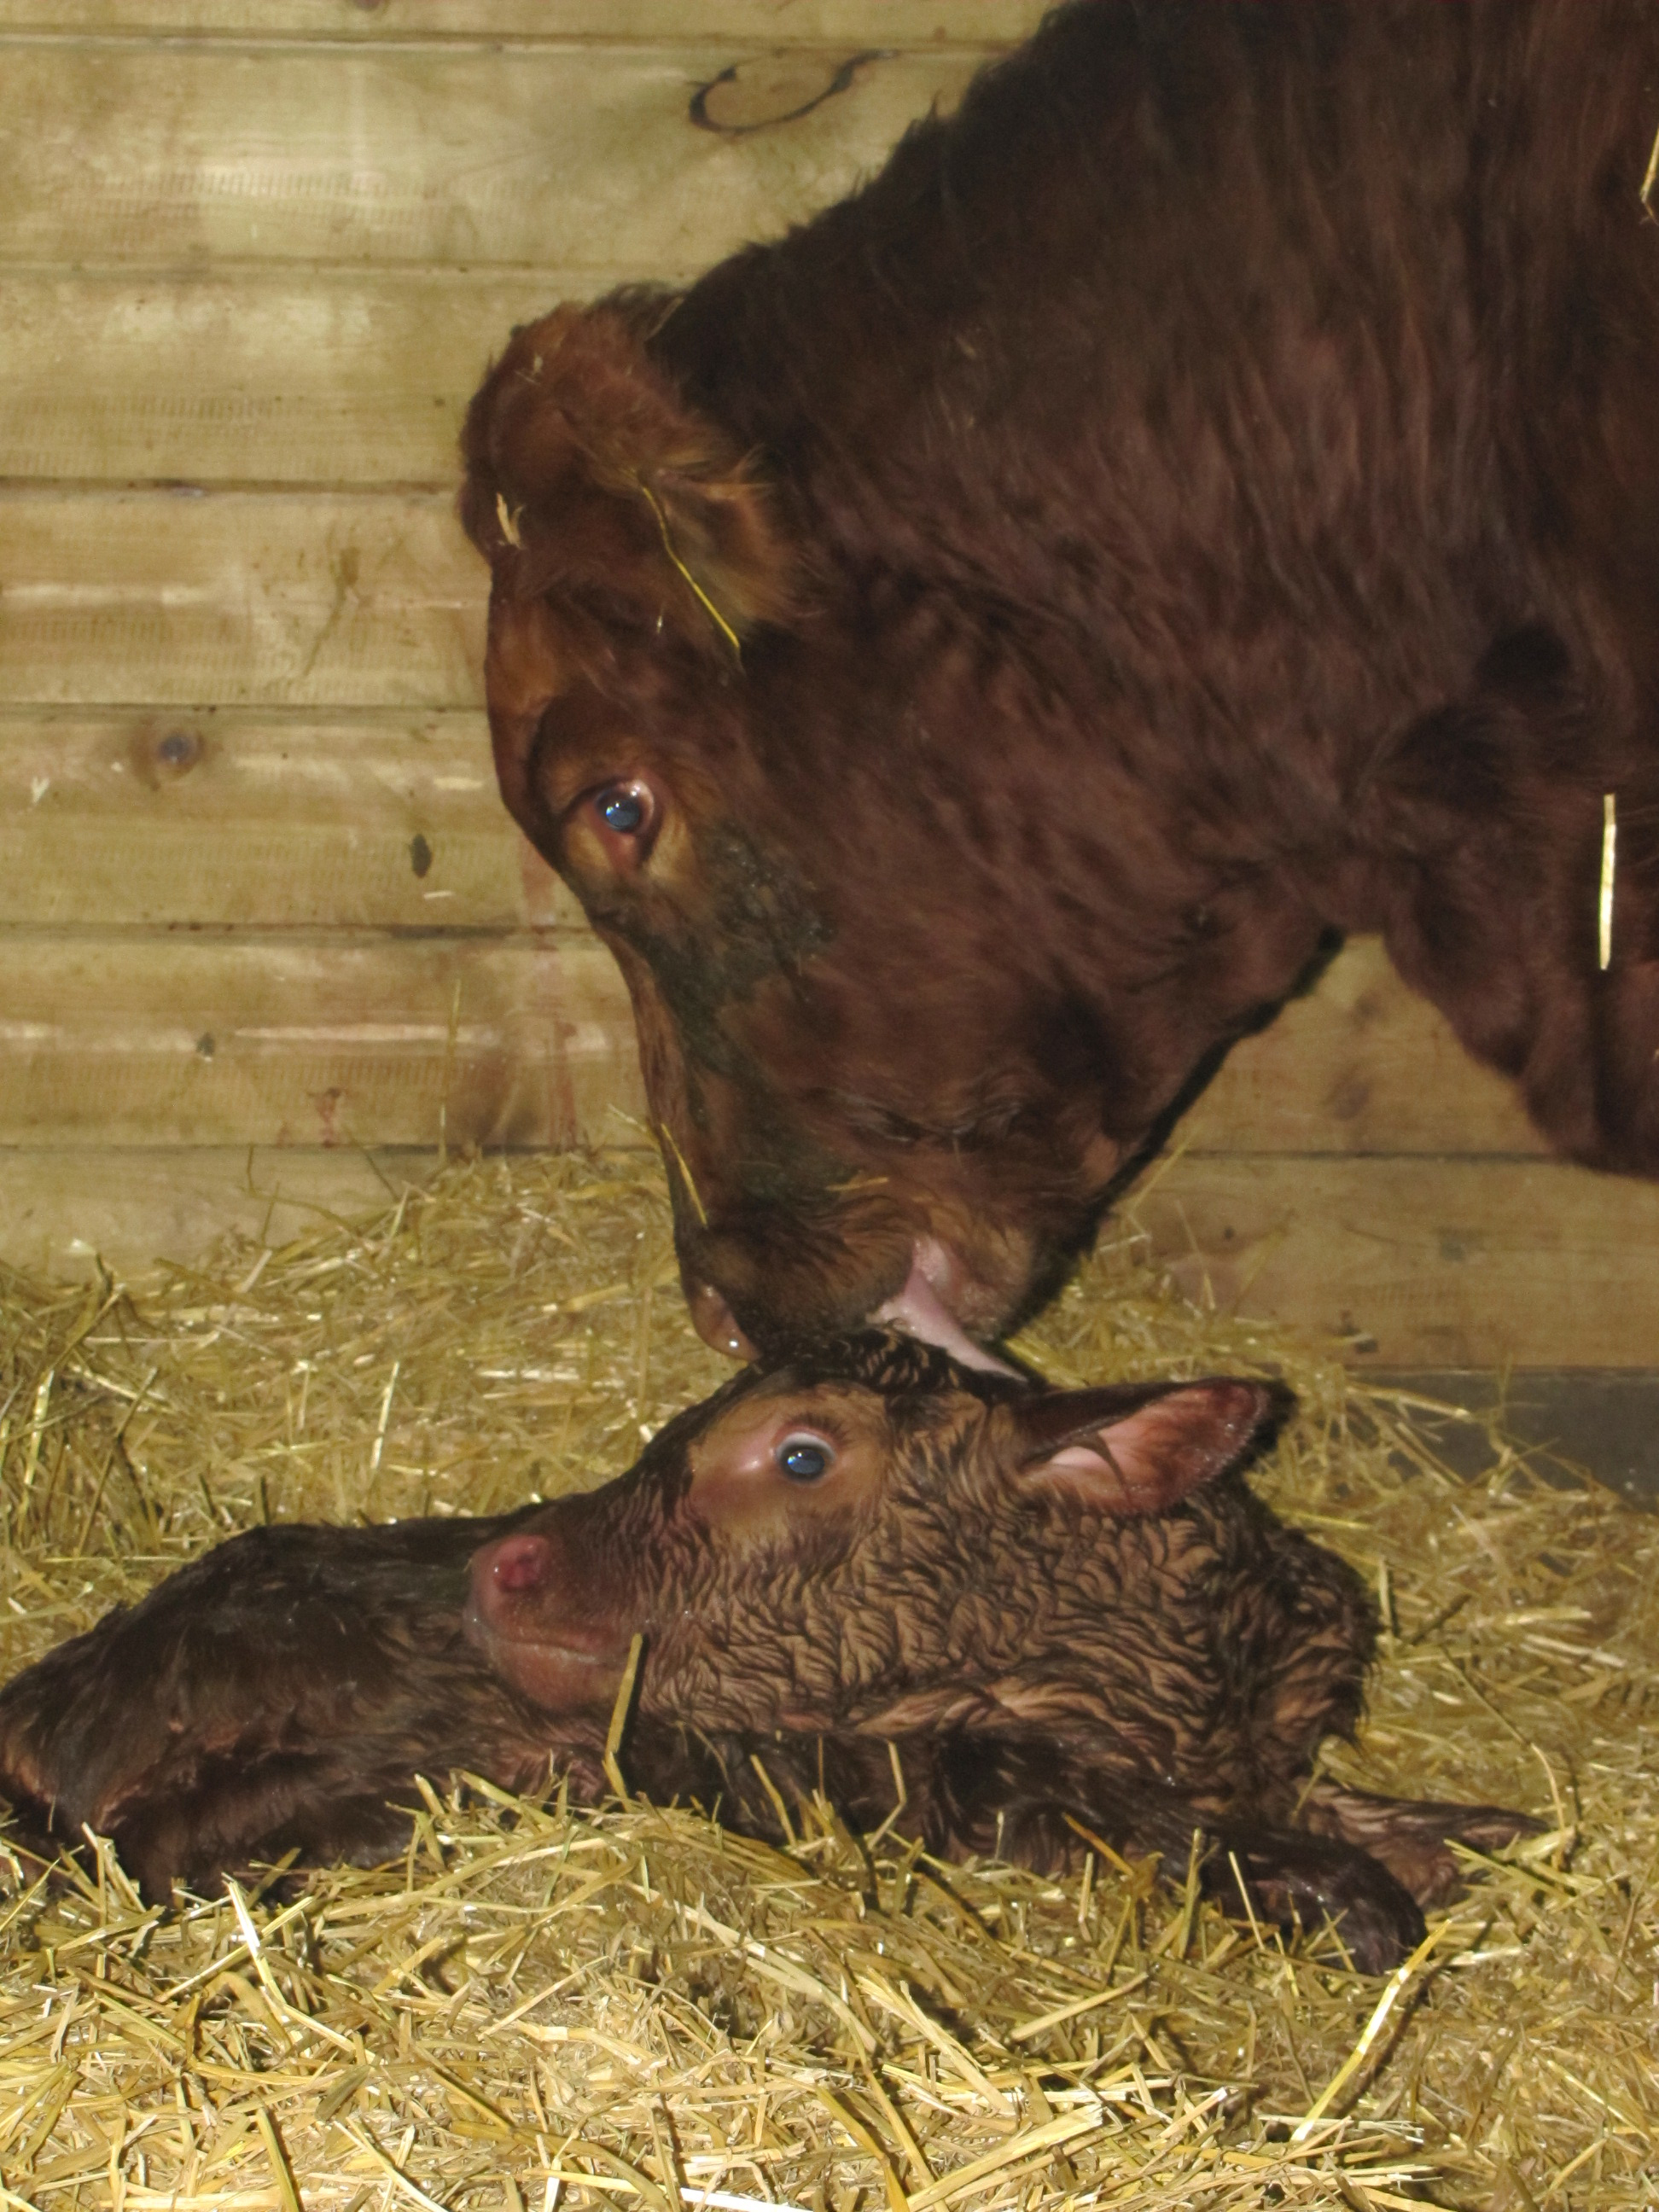 The newborn calf's ability to cope with cold weather means the calf needs to rise quickly after birth and find its food and life source from its mother. (NDSU photo)